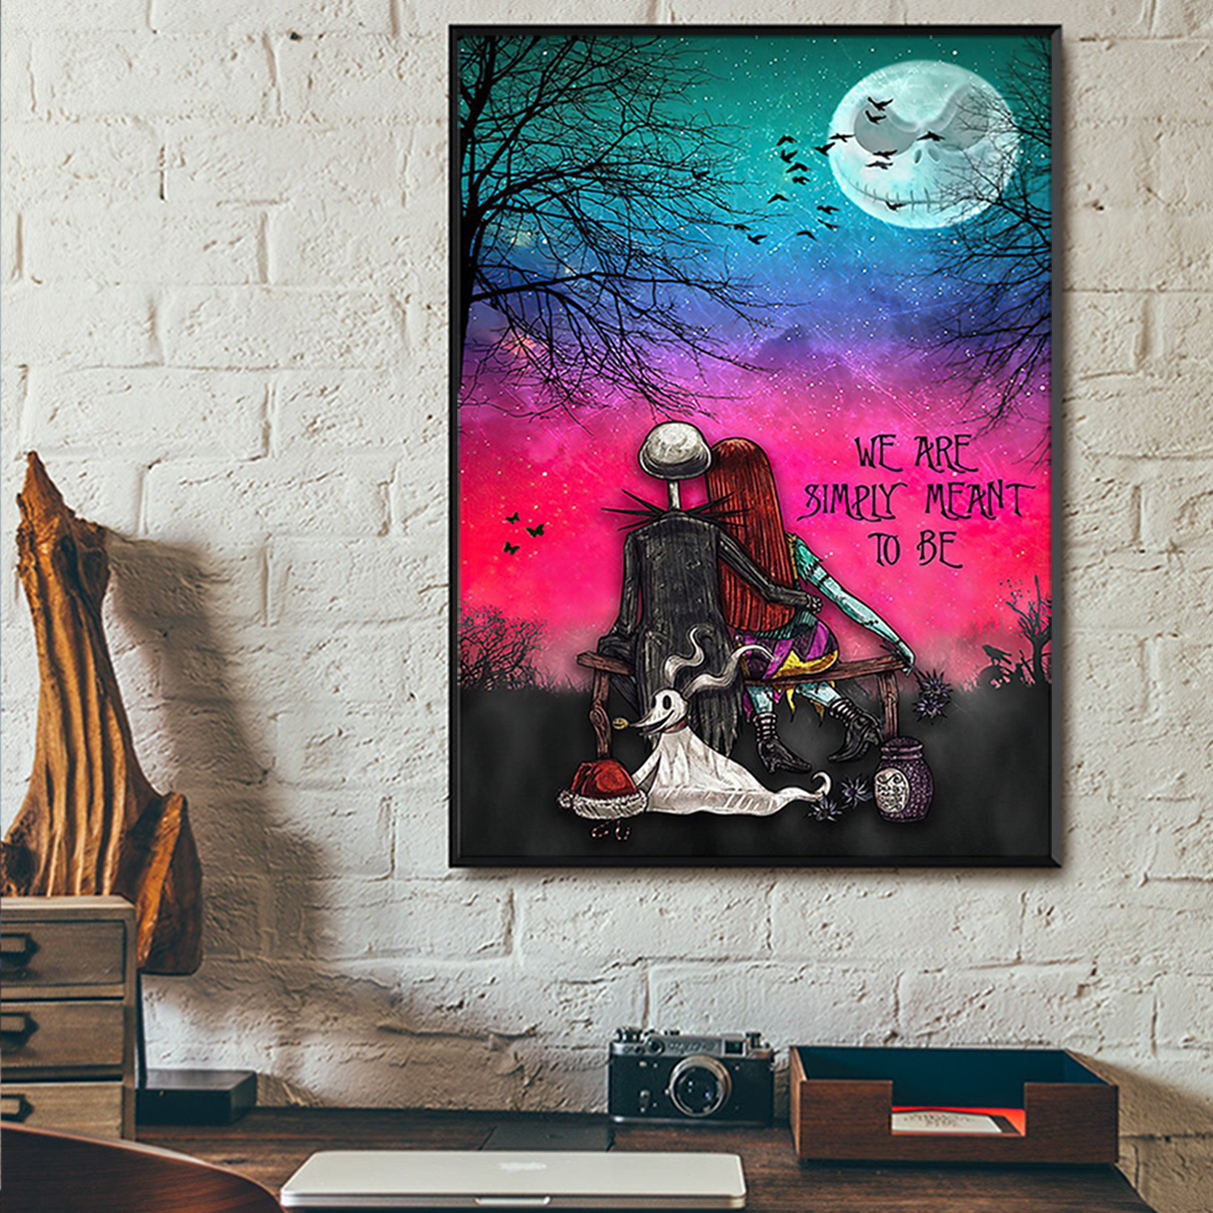 Jack skellington and sally we are simply meant to be poster A3